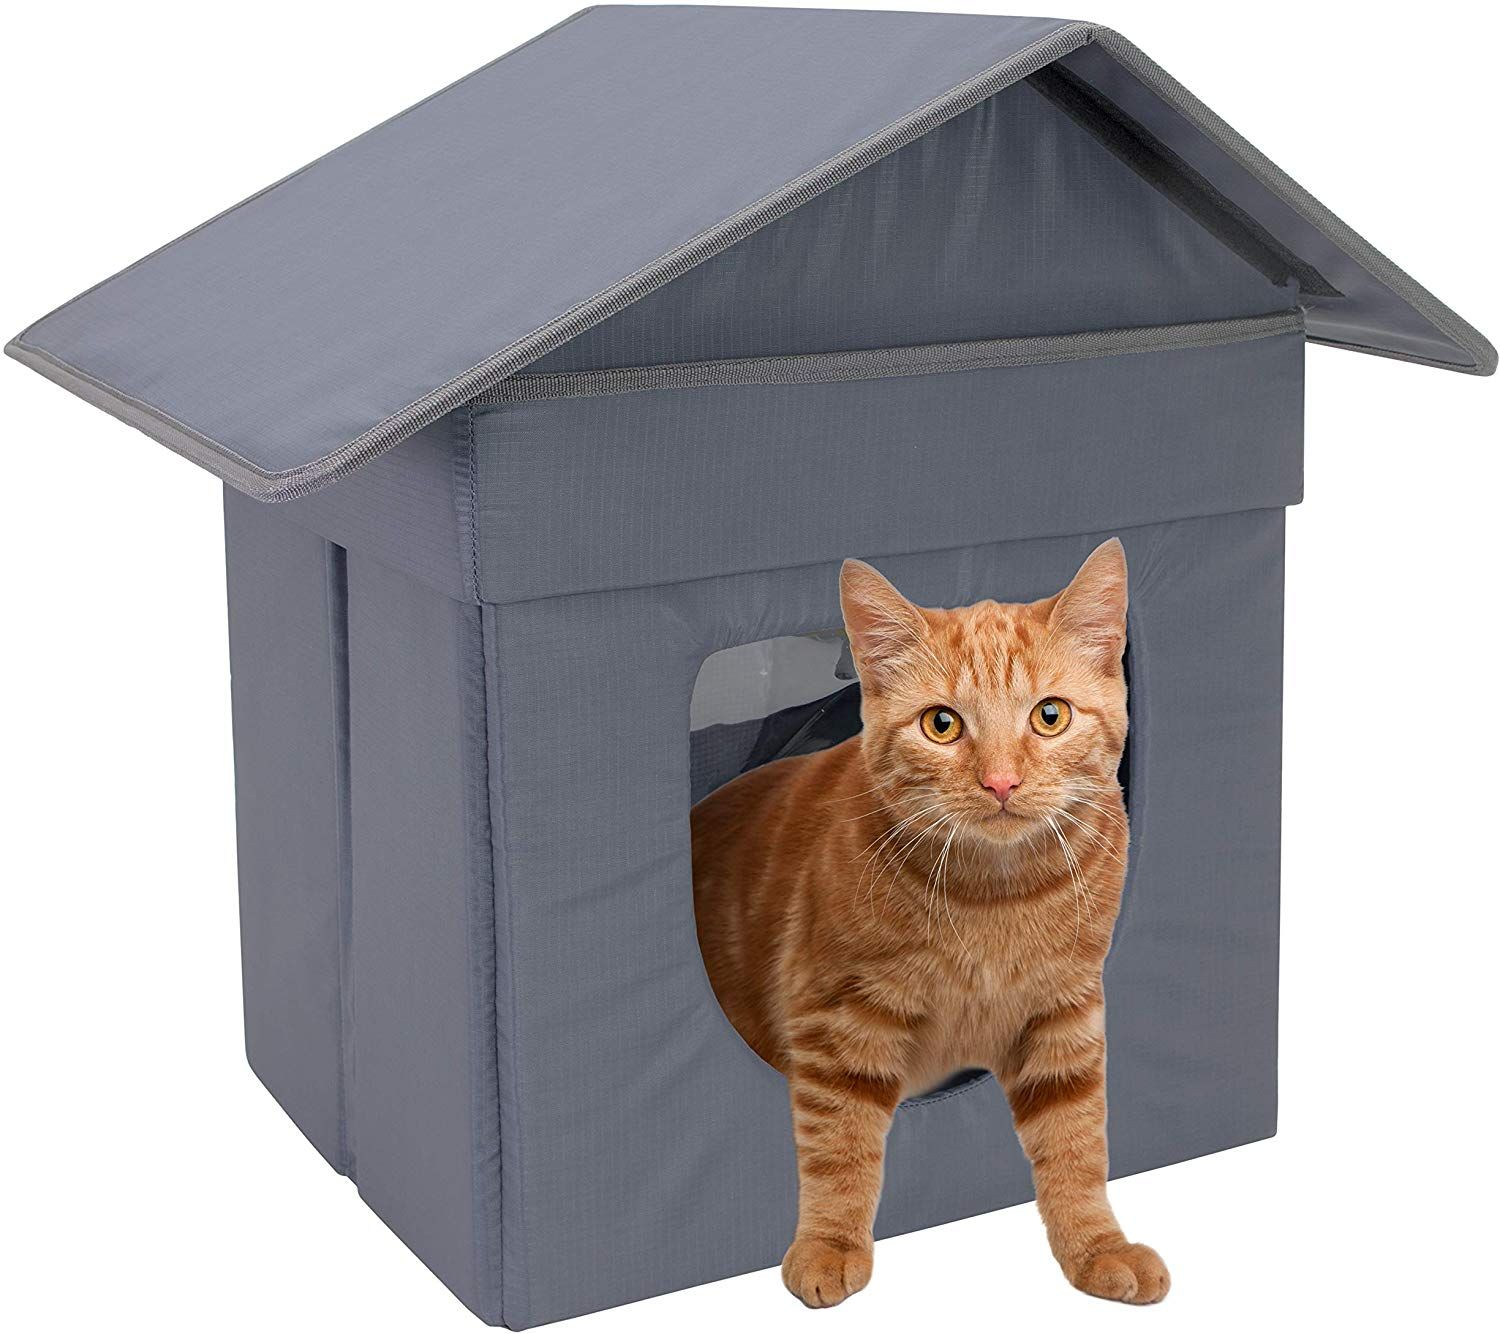 Kitty City Large Cat Bed Stackable Cat Cube Indoor Cat House Cat Condo Outdoor Cat House Cat Bed Cat Pet Supplies